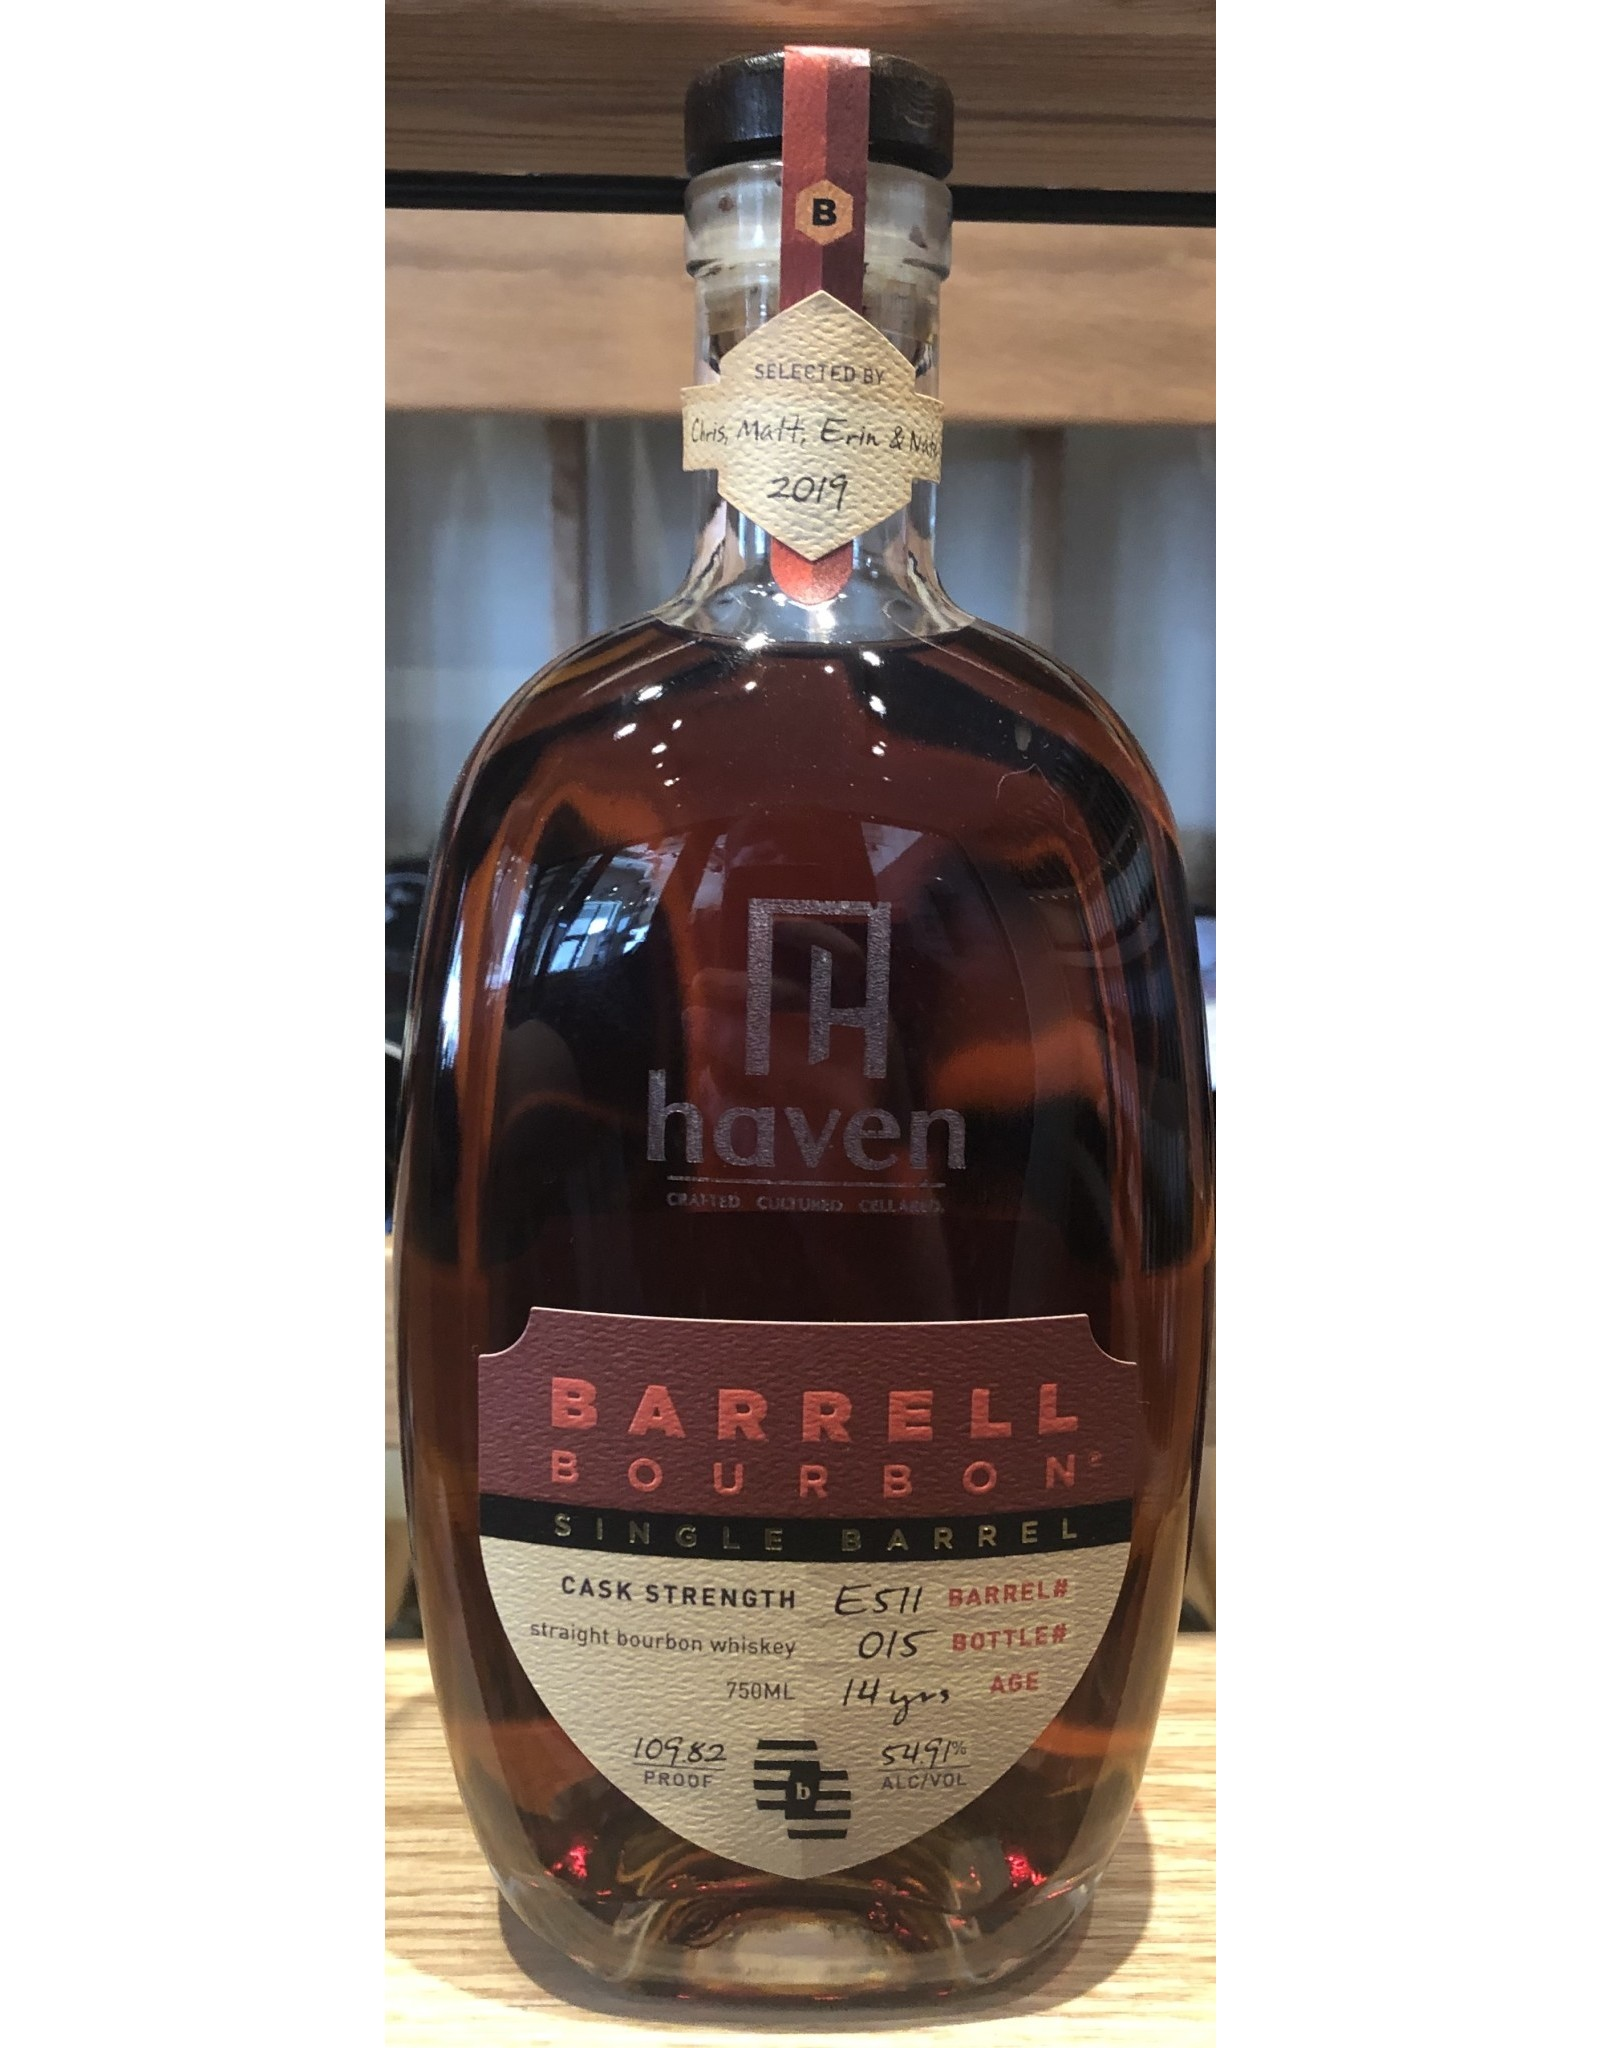 Haven Single Barrel Select Barrell Craft Bourbon 14 year B#512